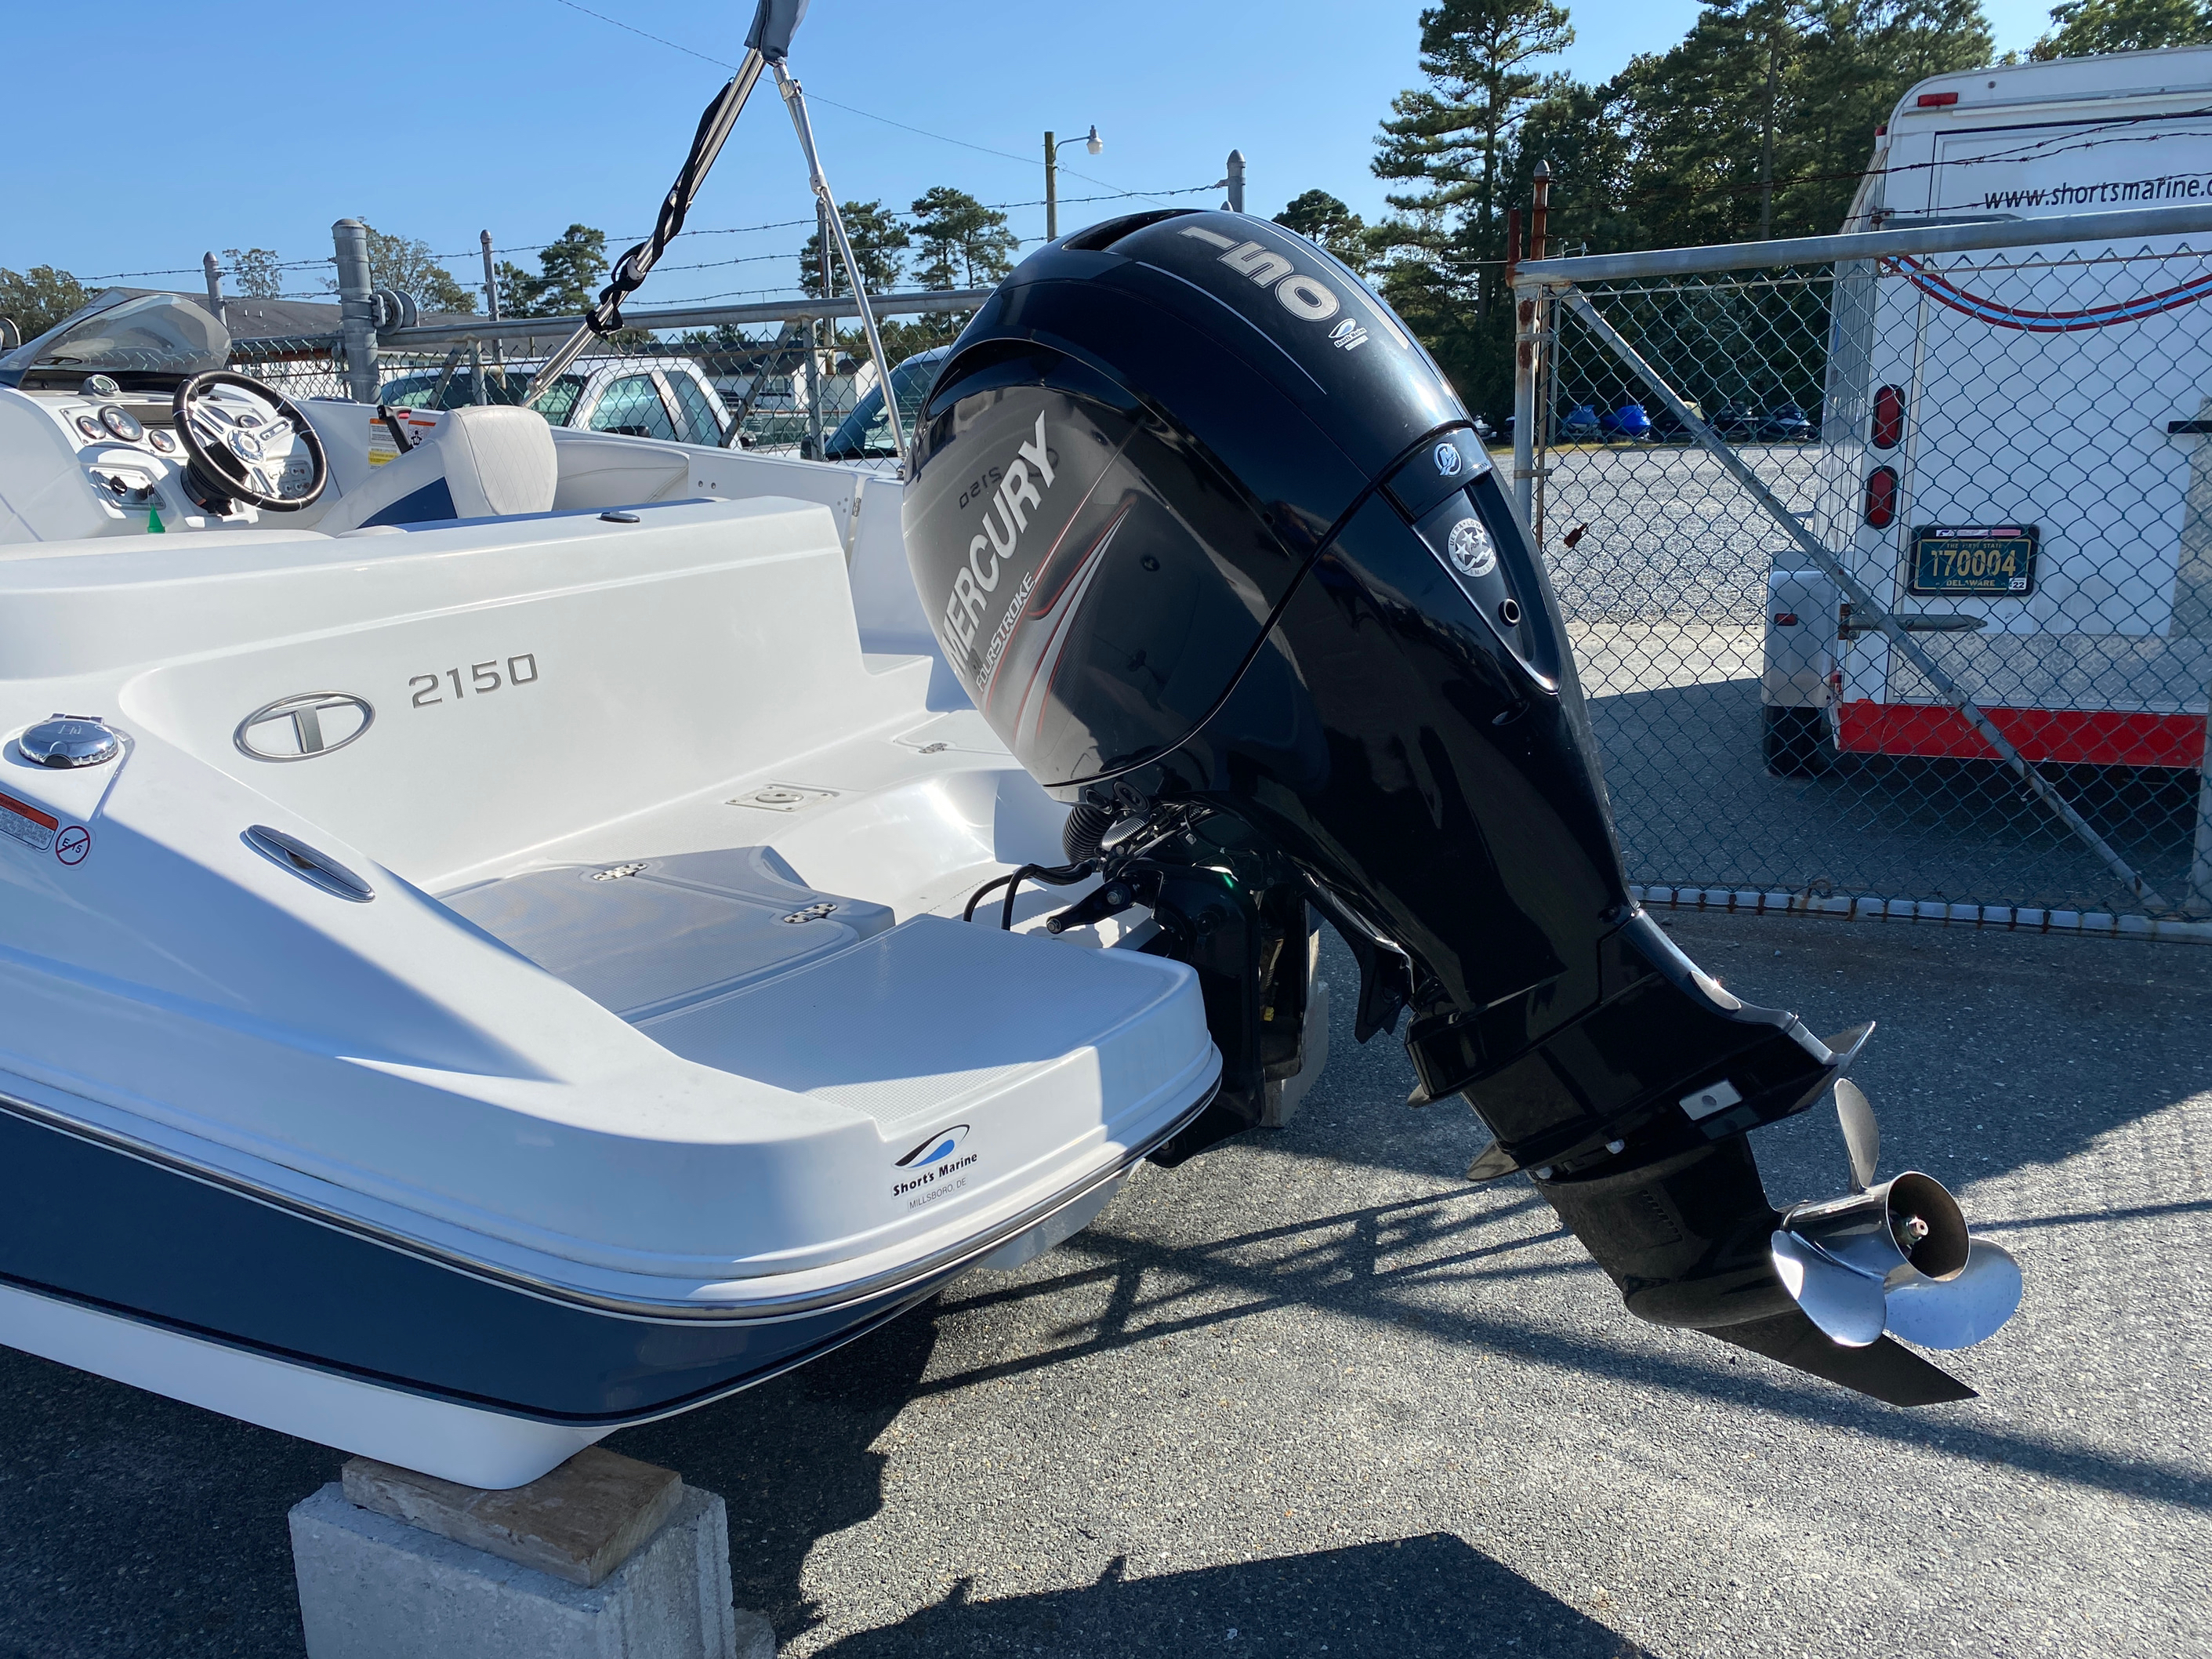 2017 Tahoe boat for sale, model of the boat is 2150 & Image # 8 of 12